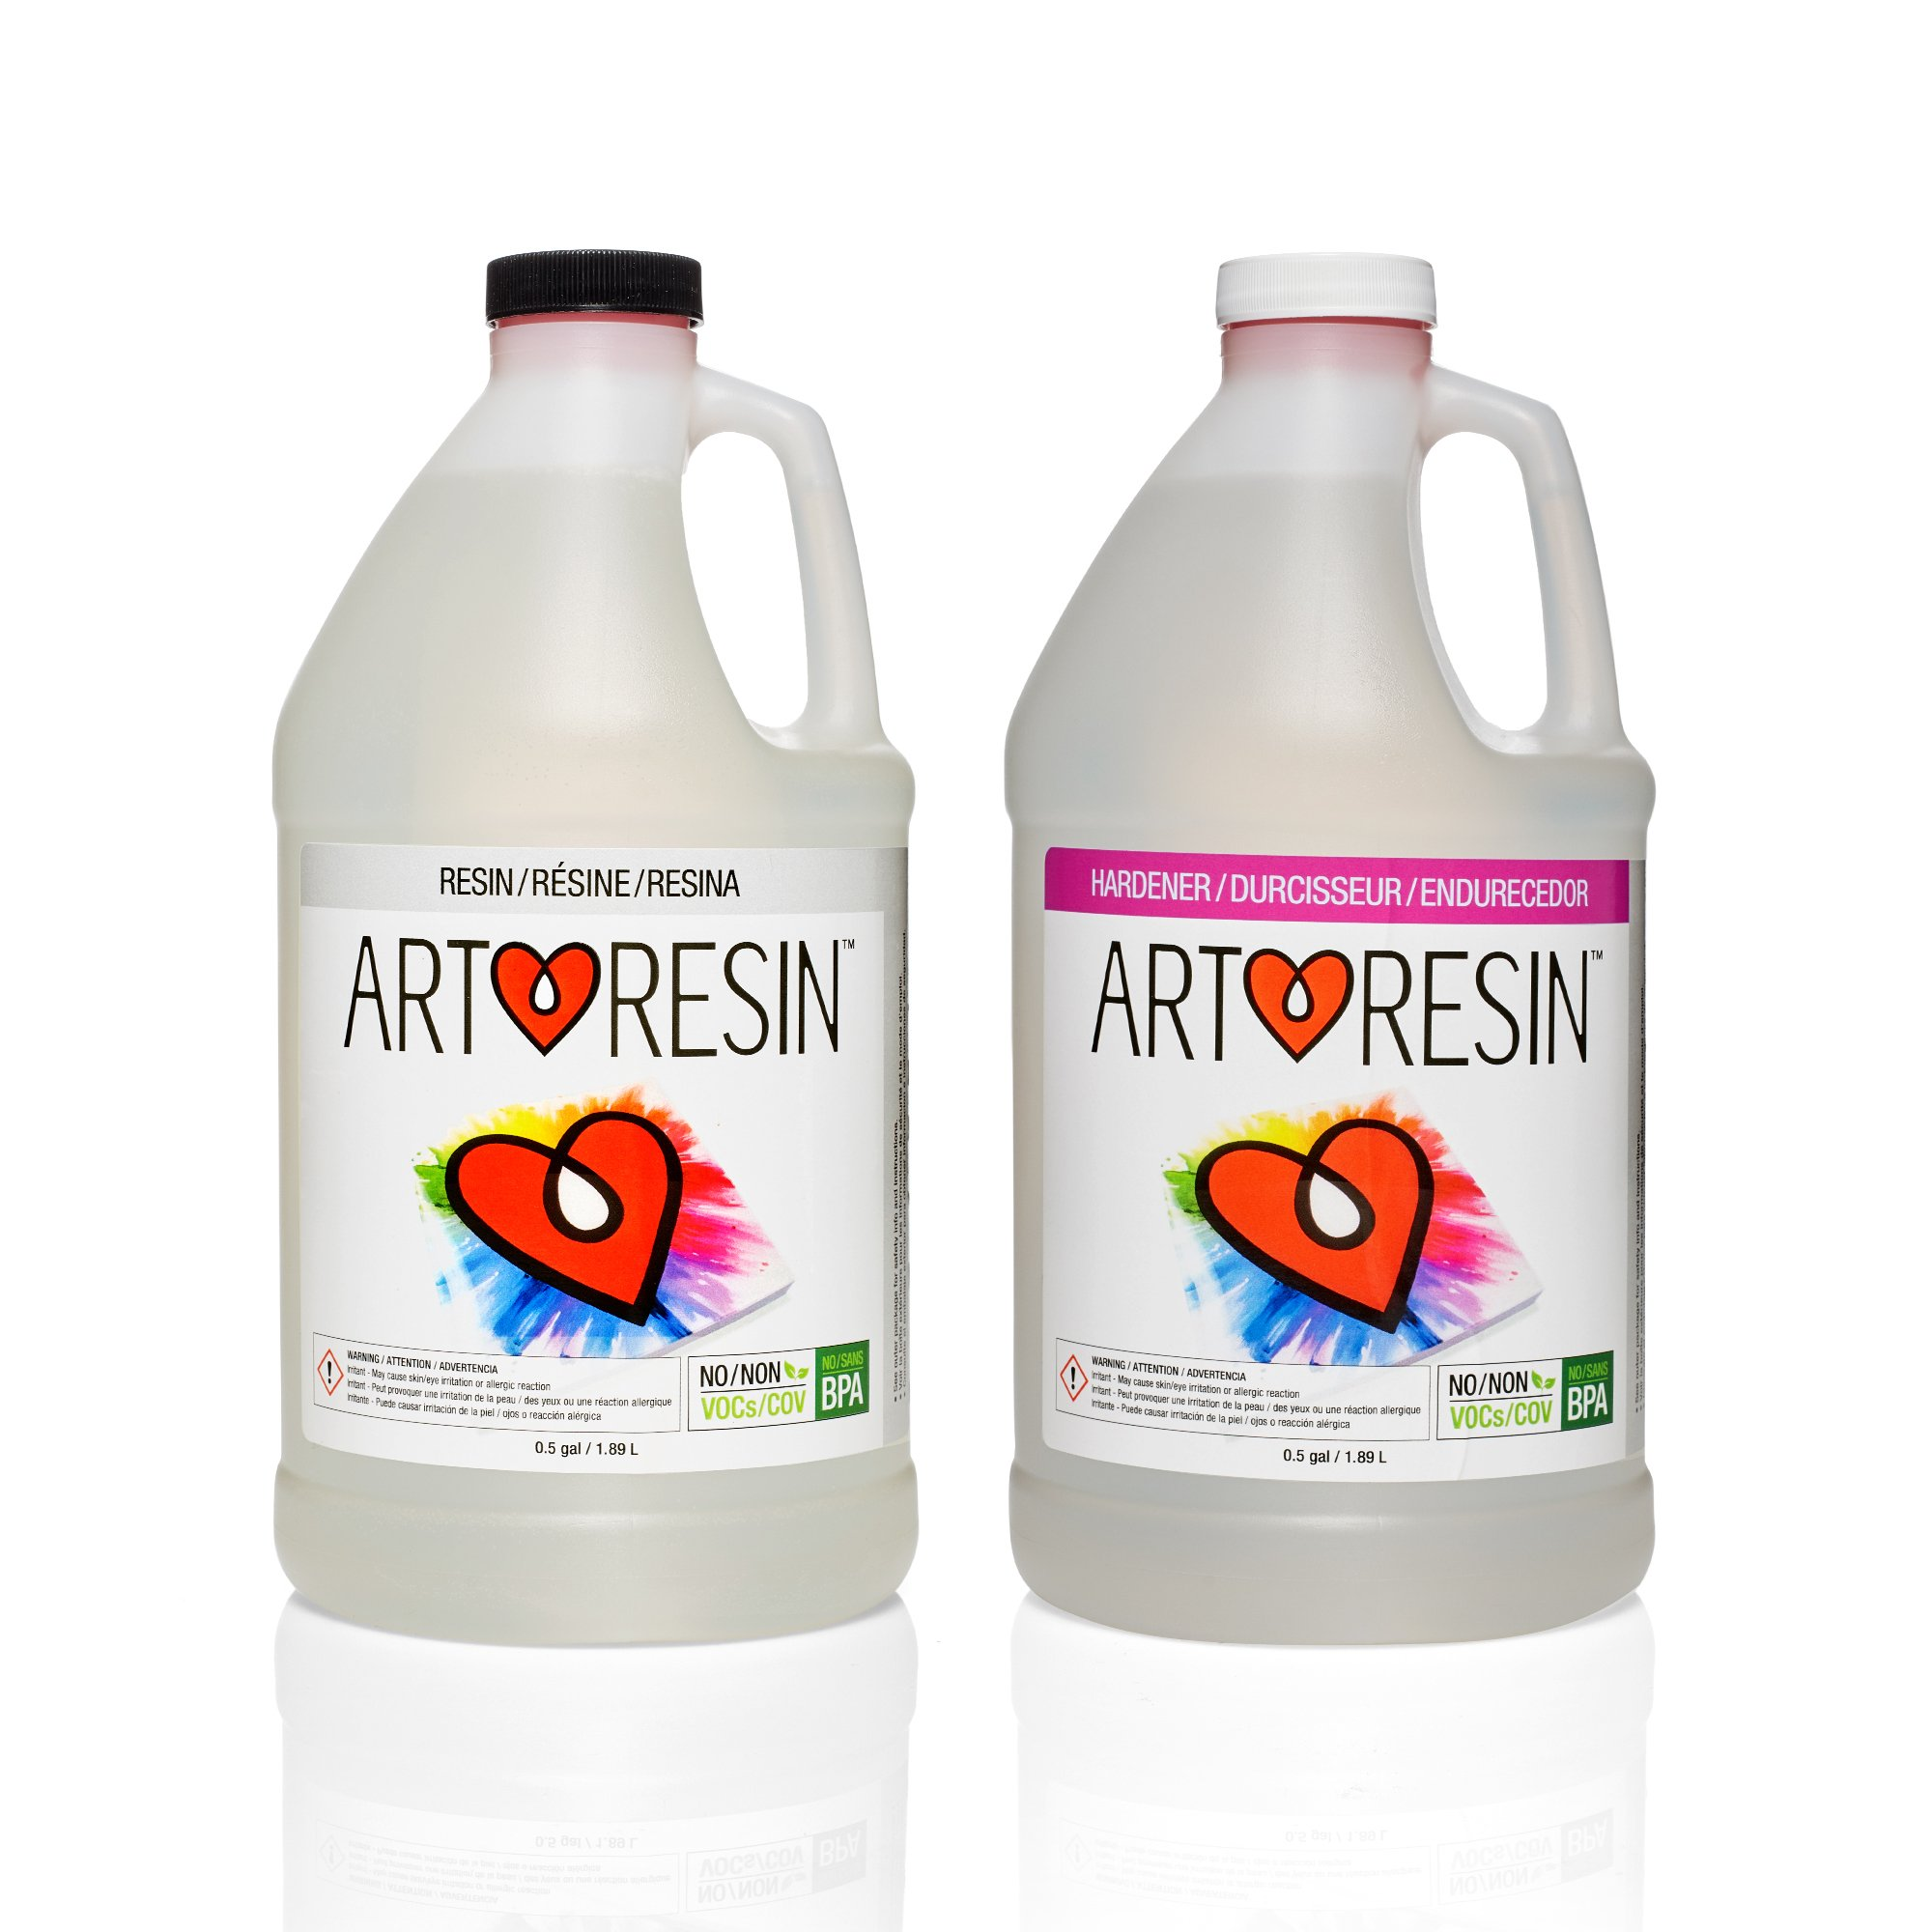 ArtResin - Epoxy Resin - Clear - Non-Toxic - 1 gal (3.78 L) by ArtResin (Image #2)